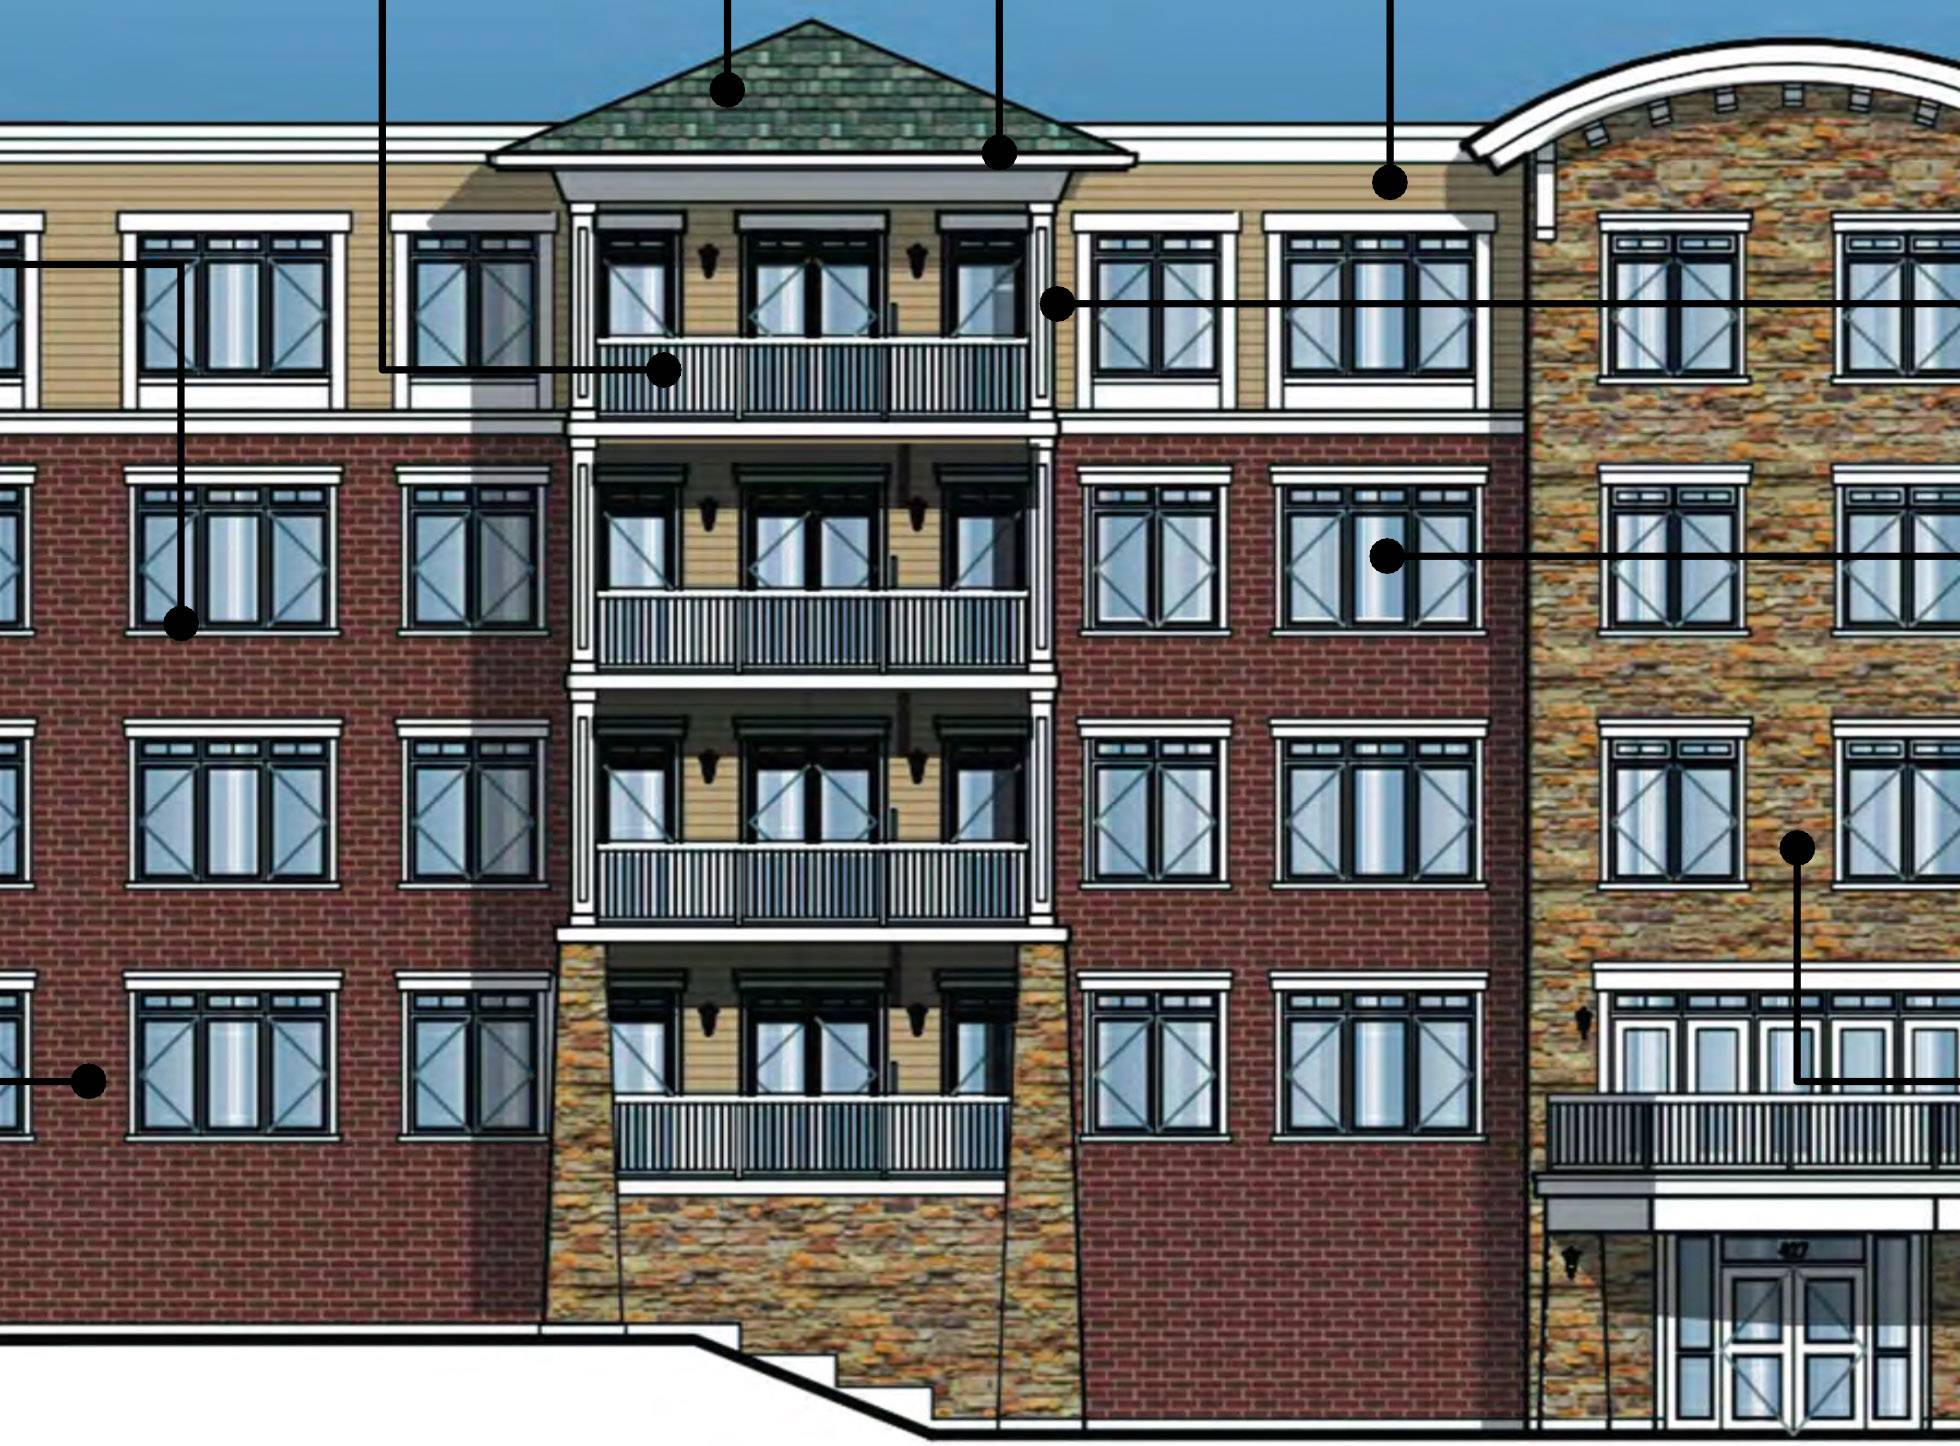 Weiss Development Co. is seeking approval to build a new residential building next to its existing River's Edge on the east side of Milwaukee Avenue in Vernon Hills. But residents of Rover's Edge oppose making the new units rentals.